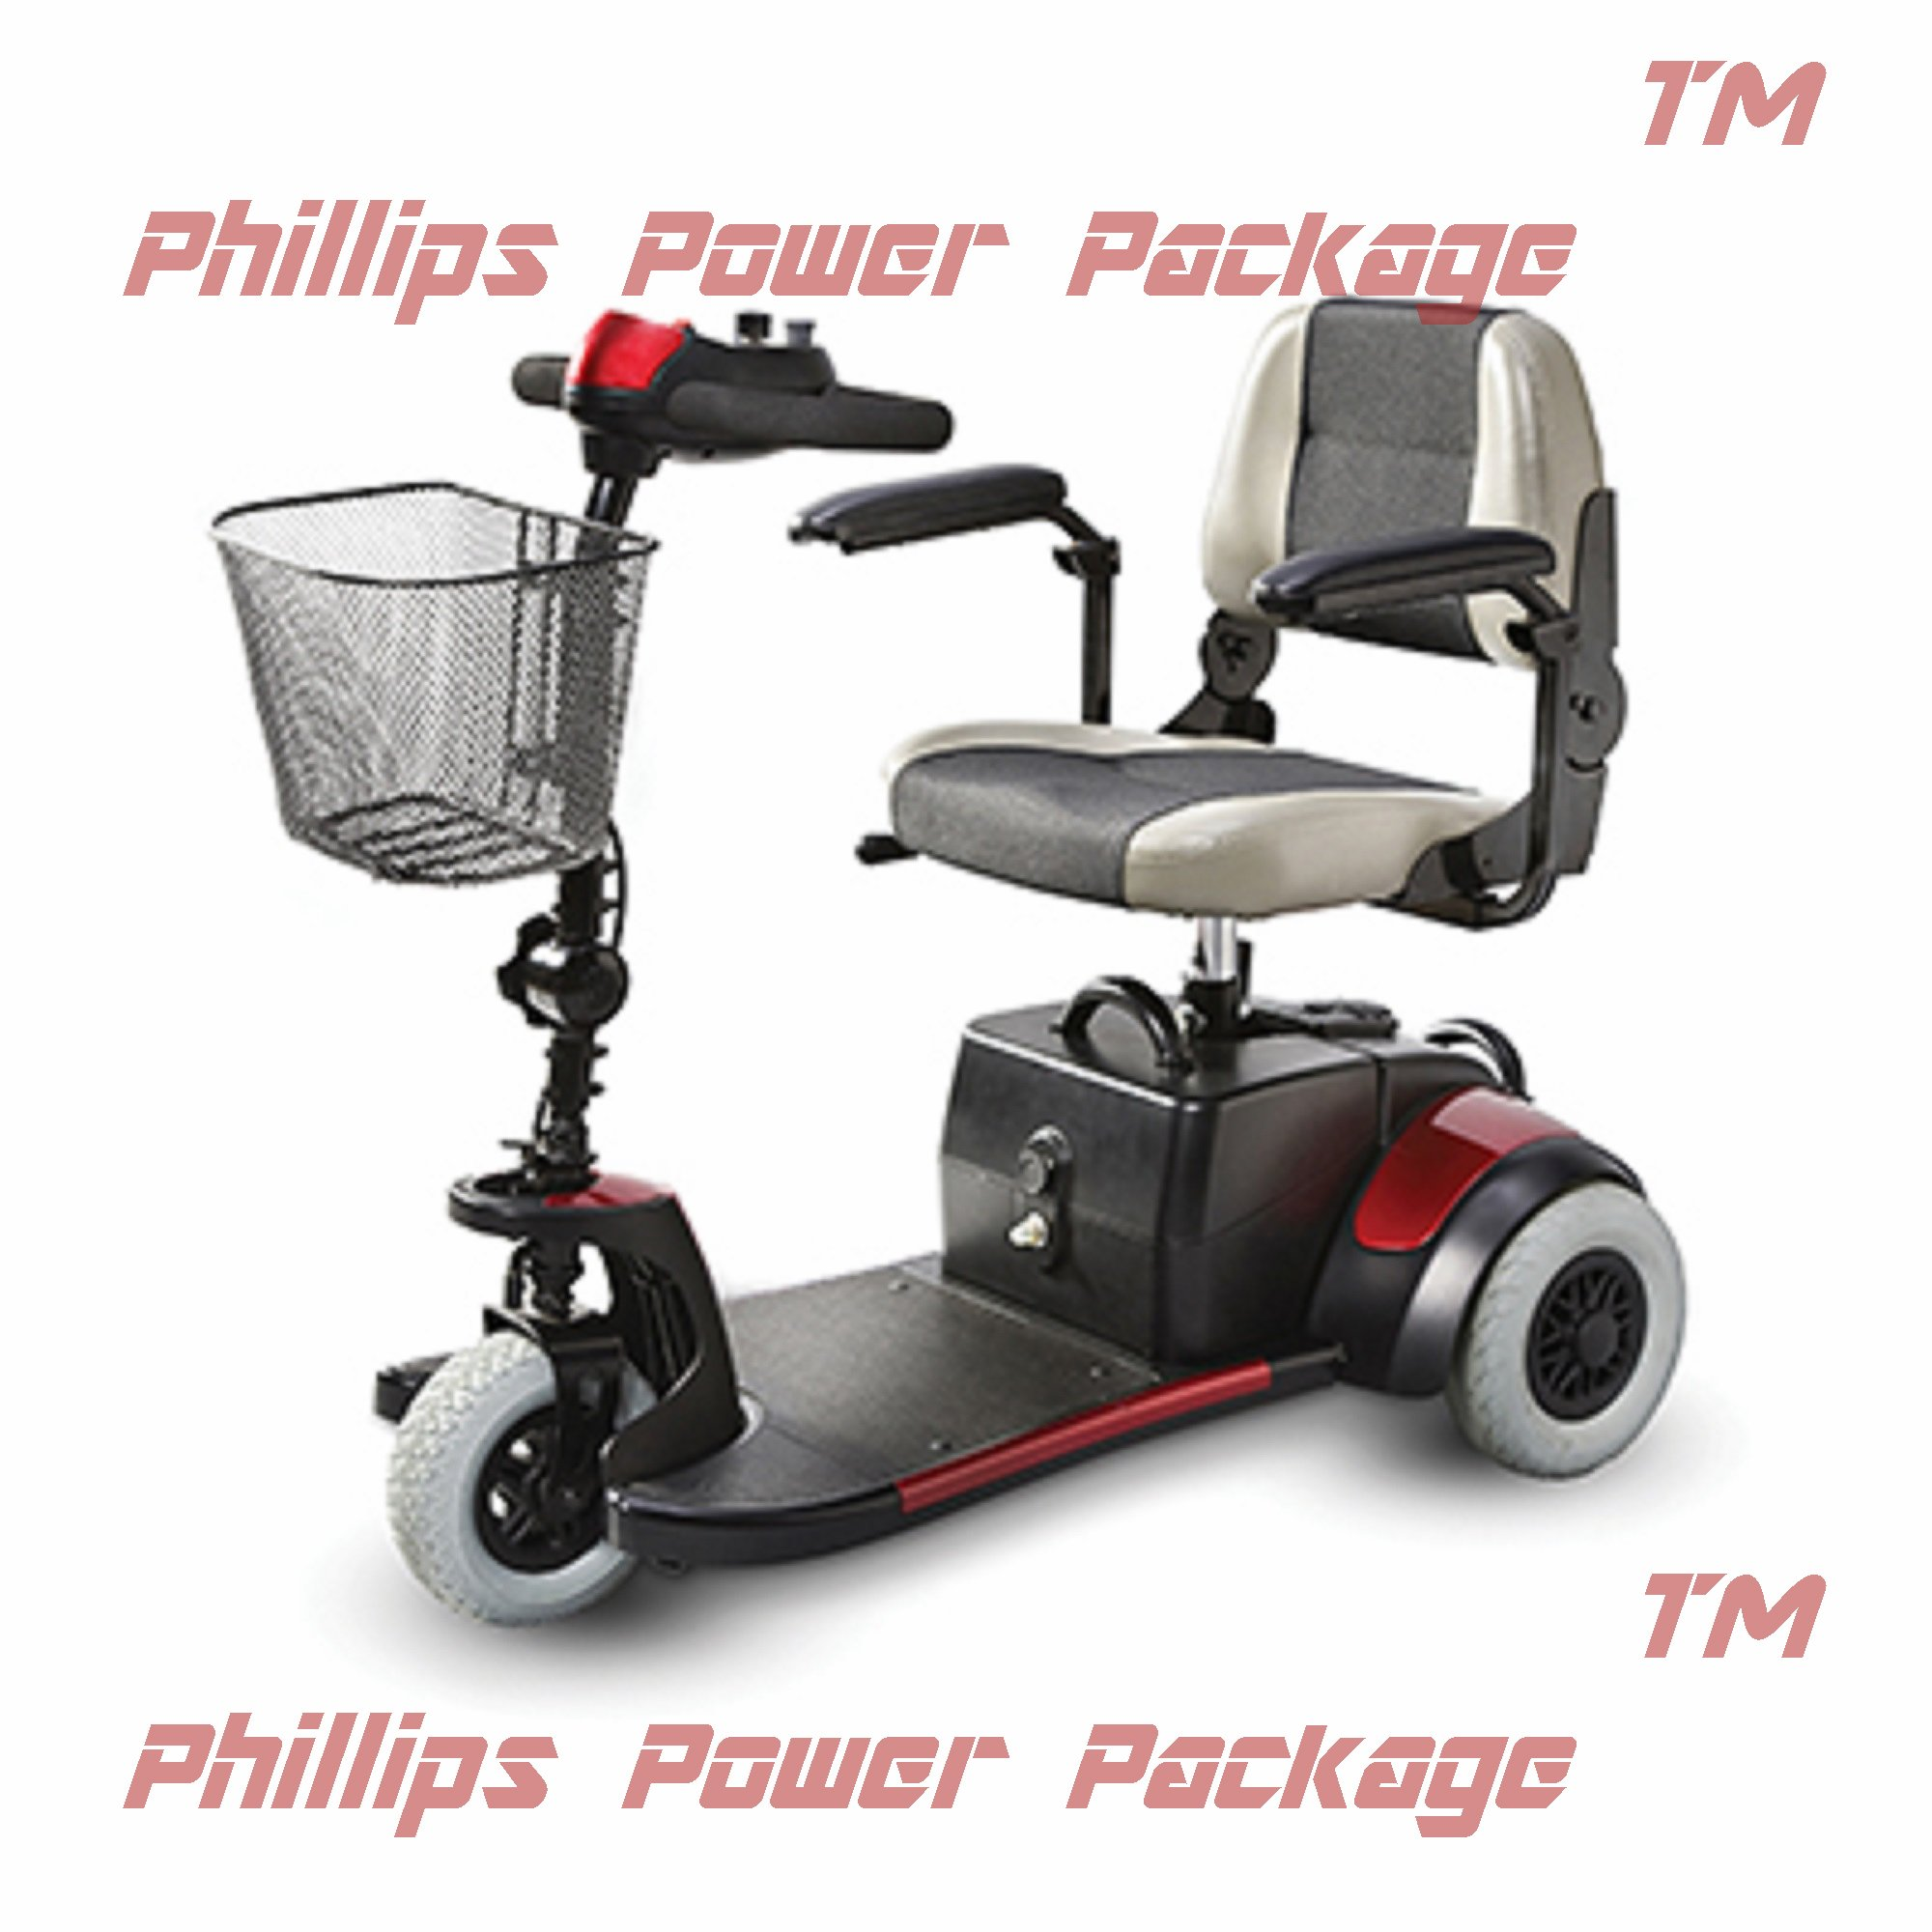 Merits Health Products, Mini Coupe, 3-Wheel Super Micro Electric Scooter, 16.5''Wx15.5''D, Red - PHILLIPS POWER PACKAGE TM - TO $500 VALUE